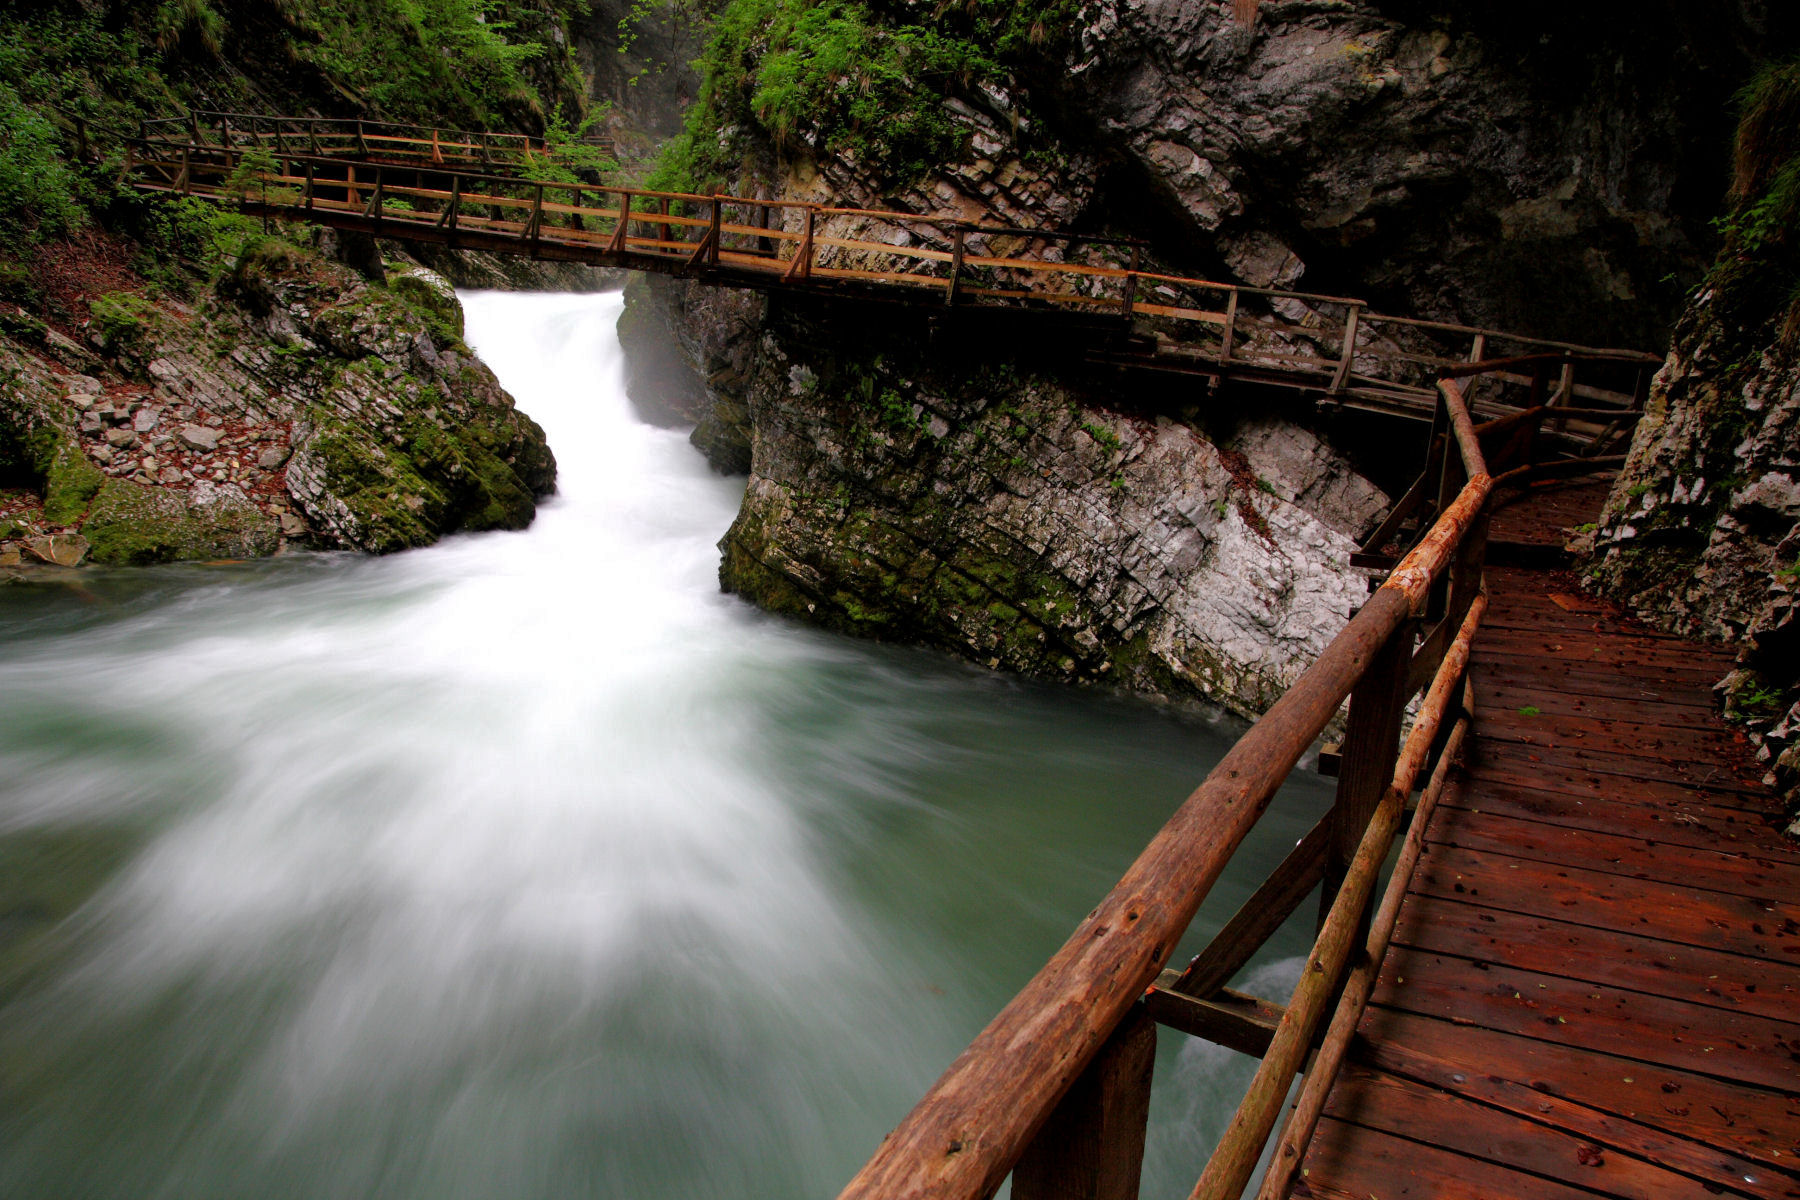 The walk along the Vintgar gorge is about 1600 meters long